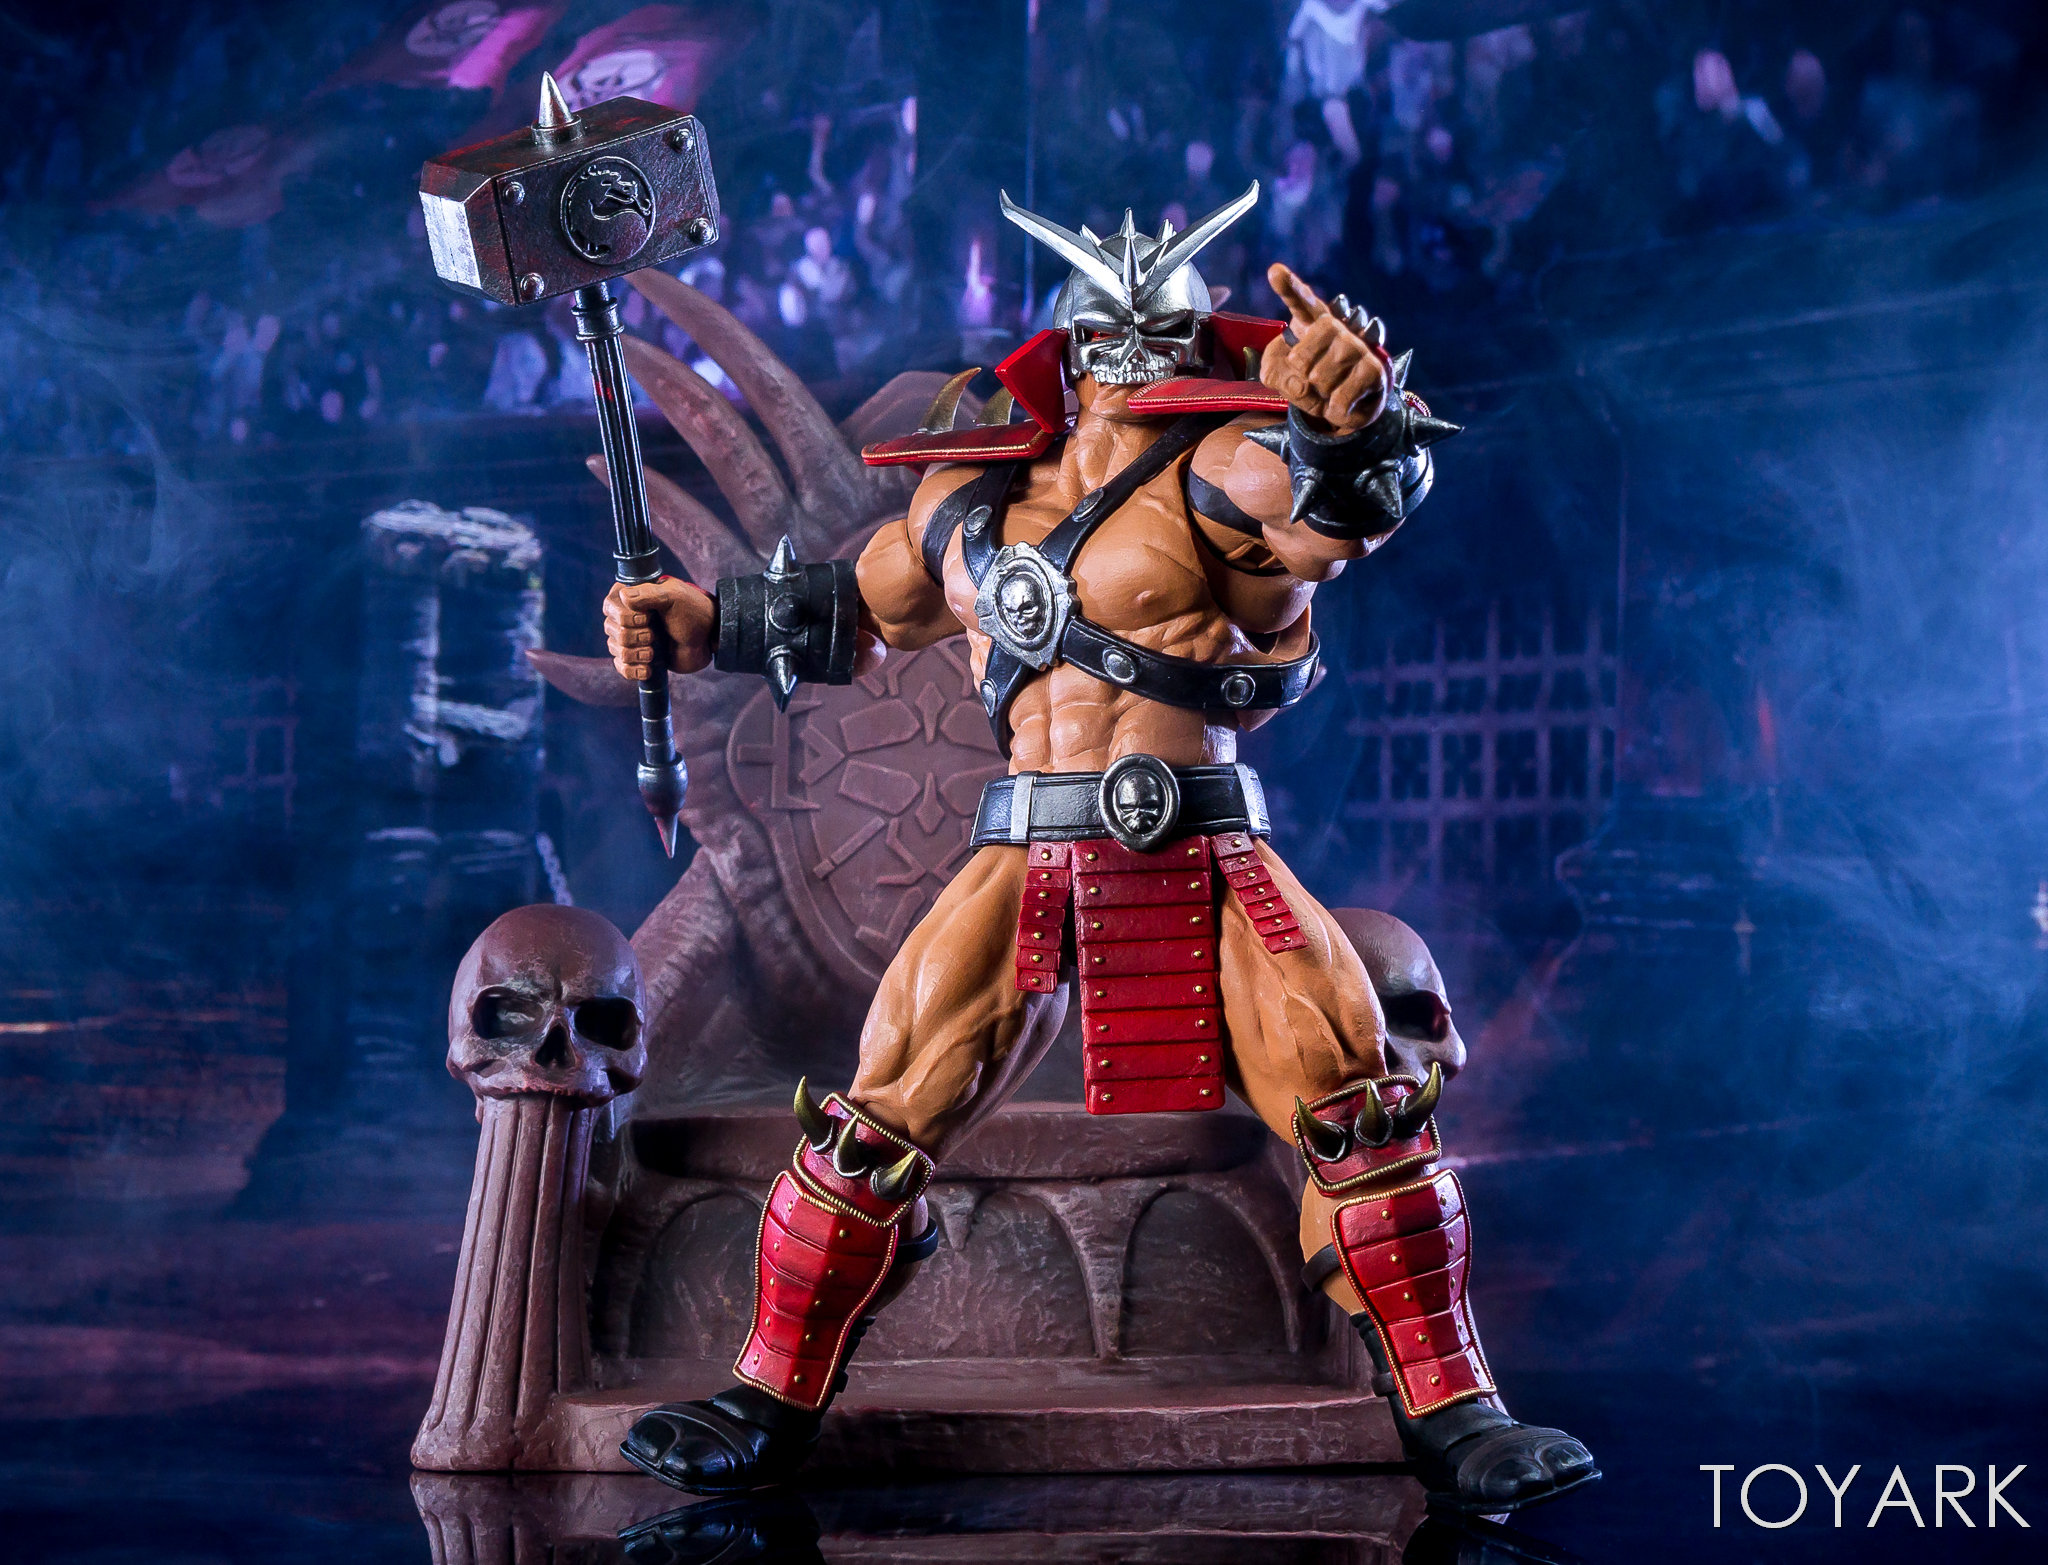 https://news.toyark.com/wp-content/uploads/sites/4/2018/06/Storm-Mortal-Kombat-Shao-Kahn-Figure-021.jpg